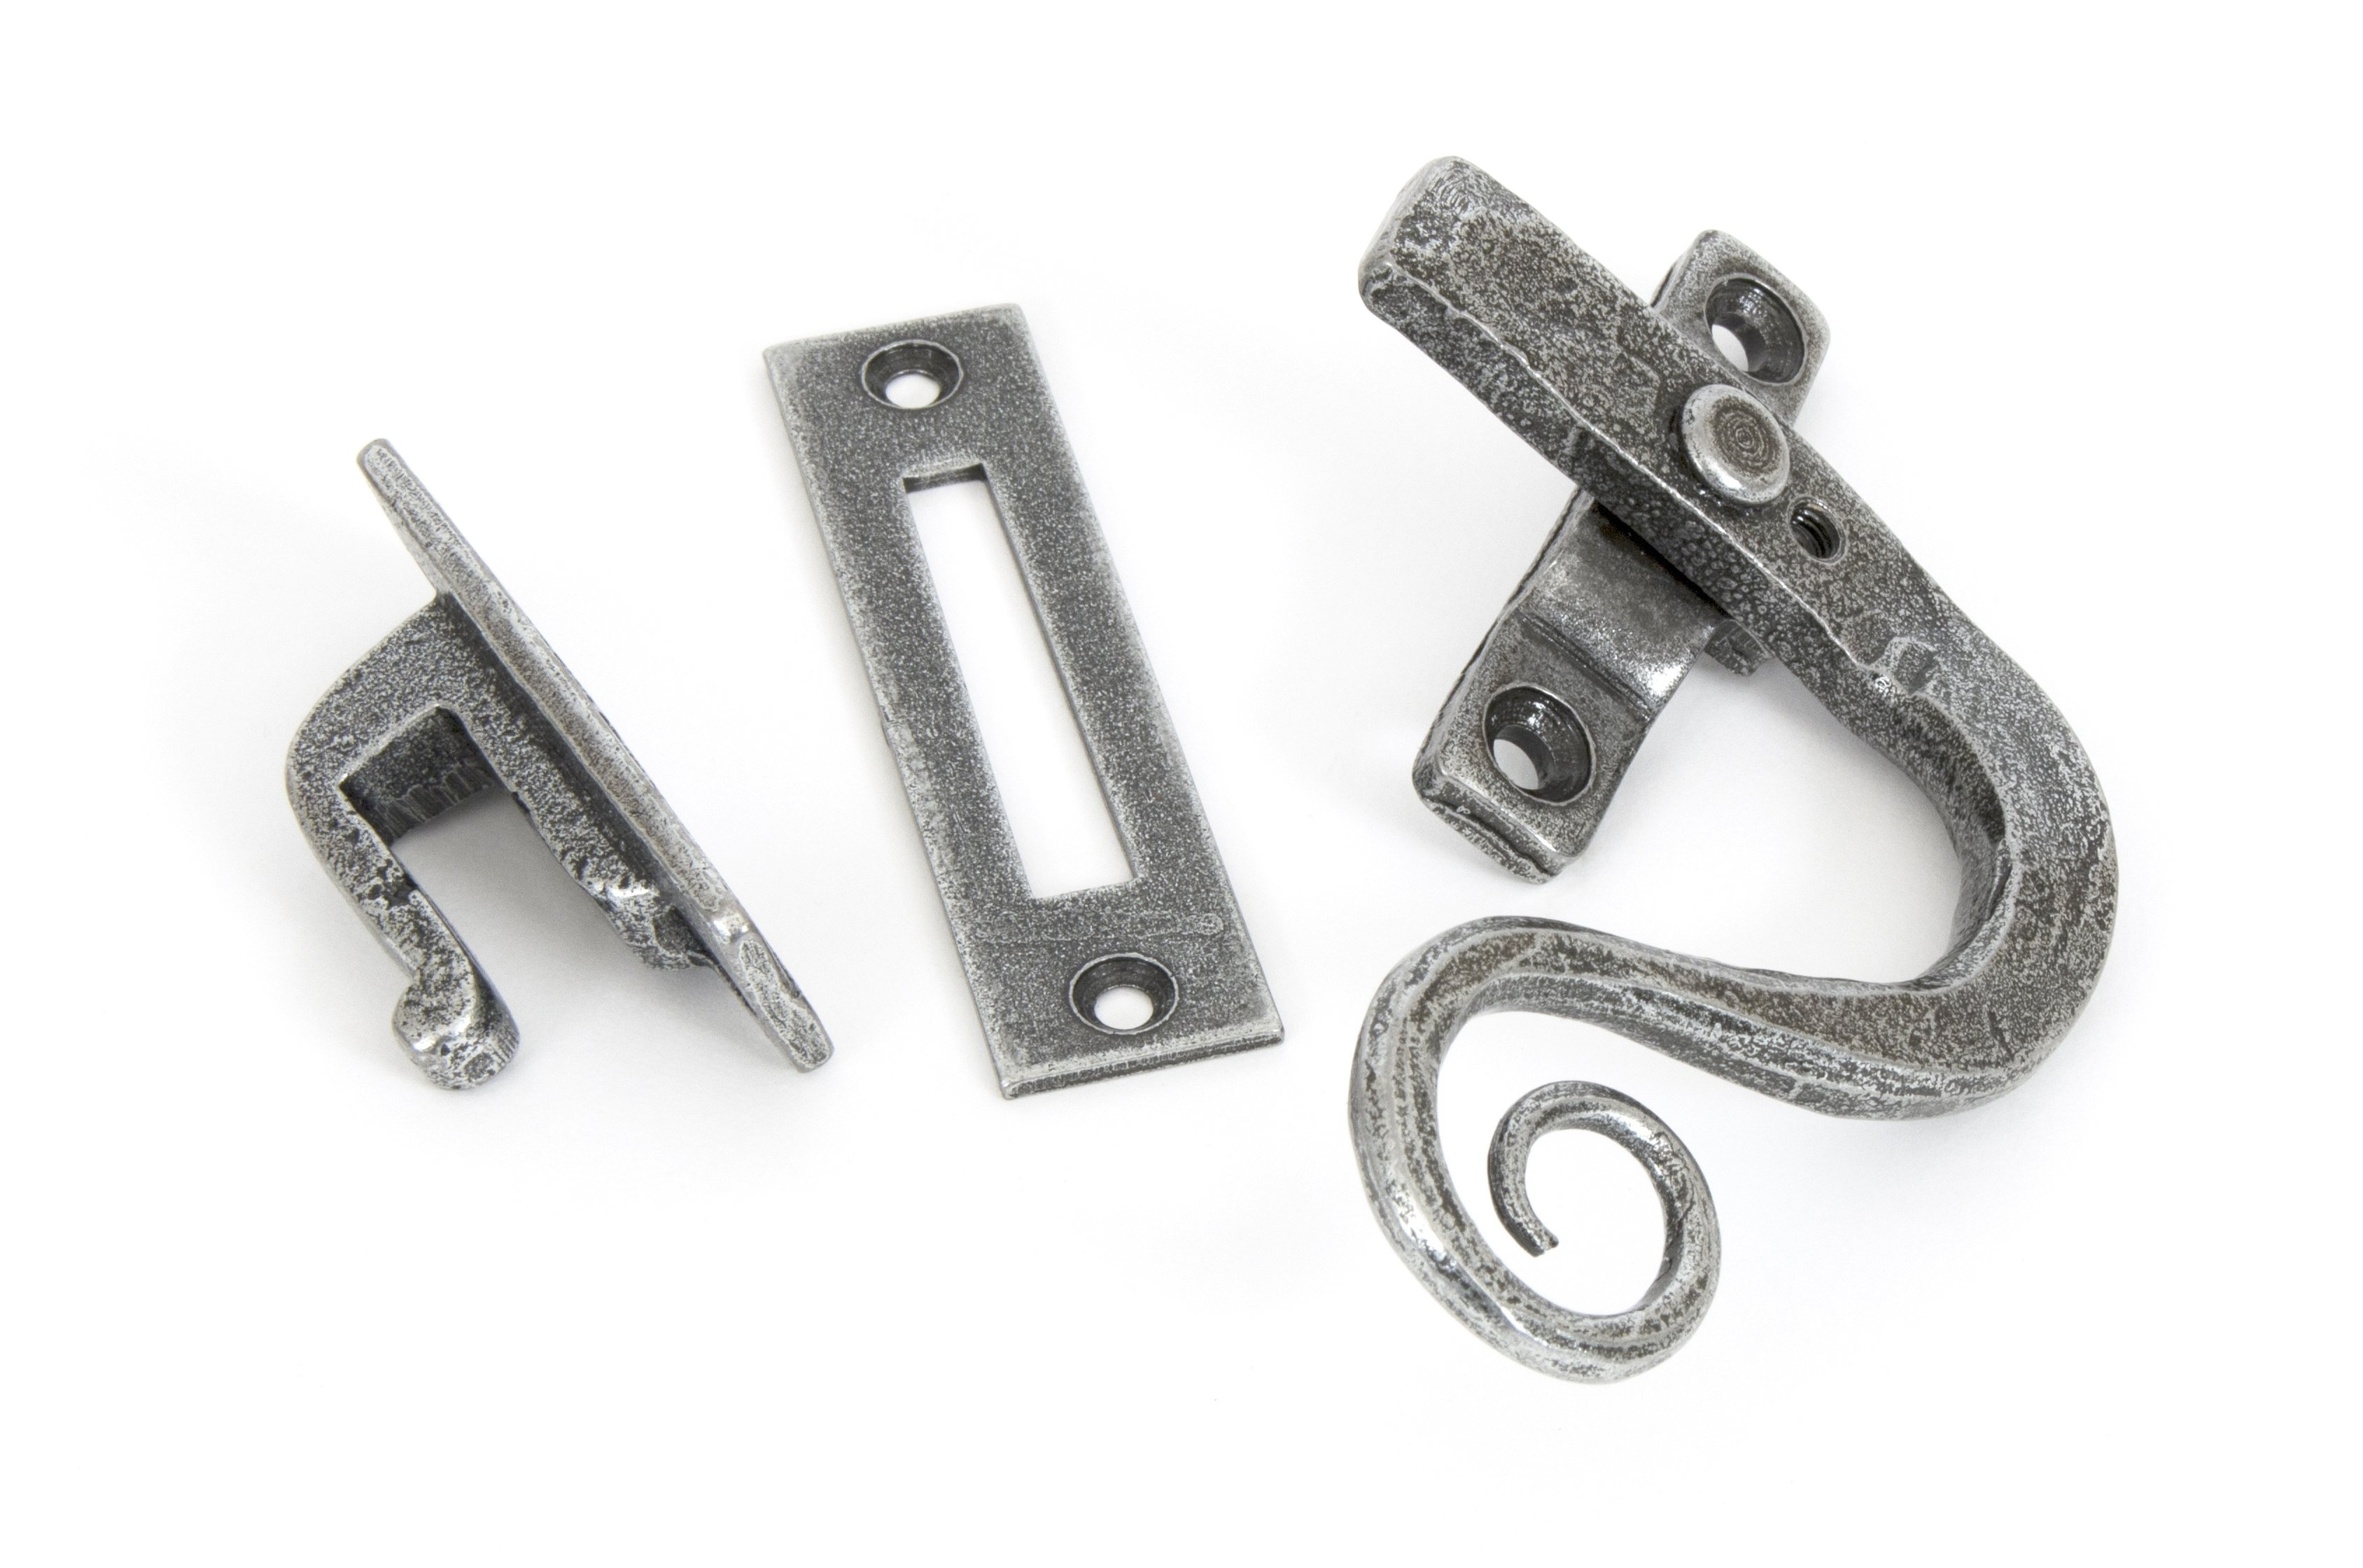 Pewter Monkeytail Fastener RH - Locking